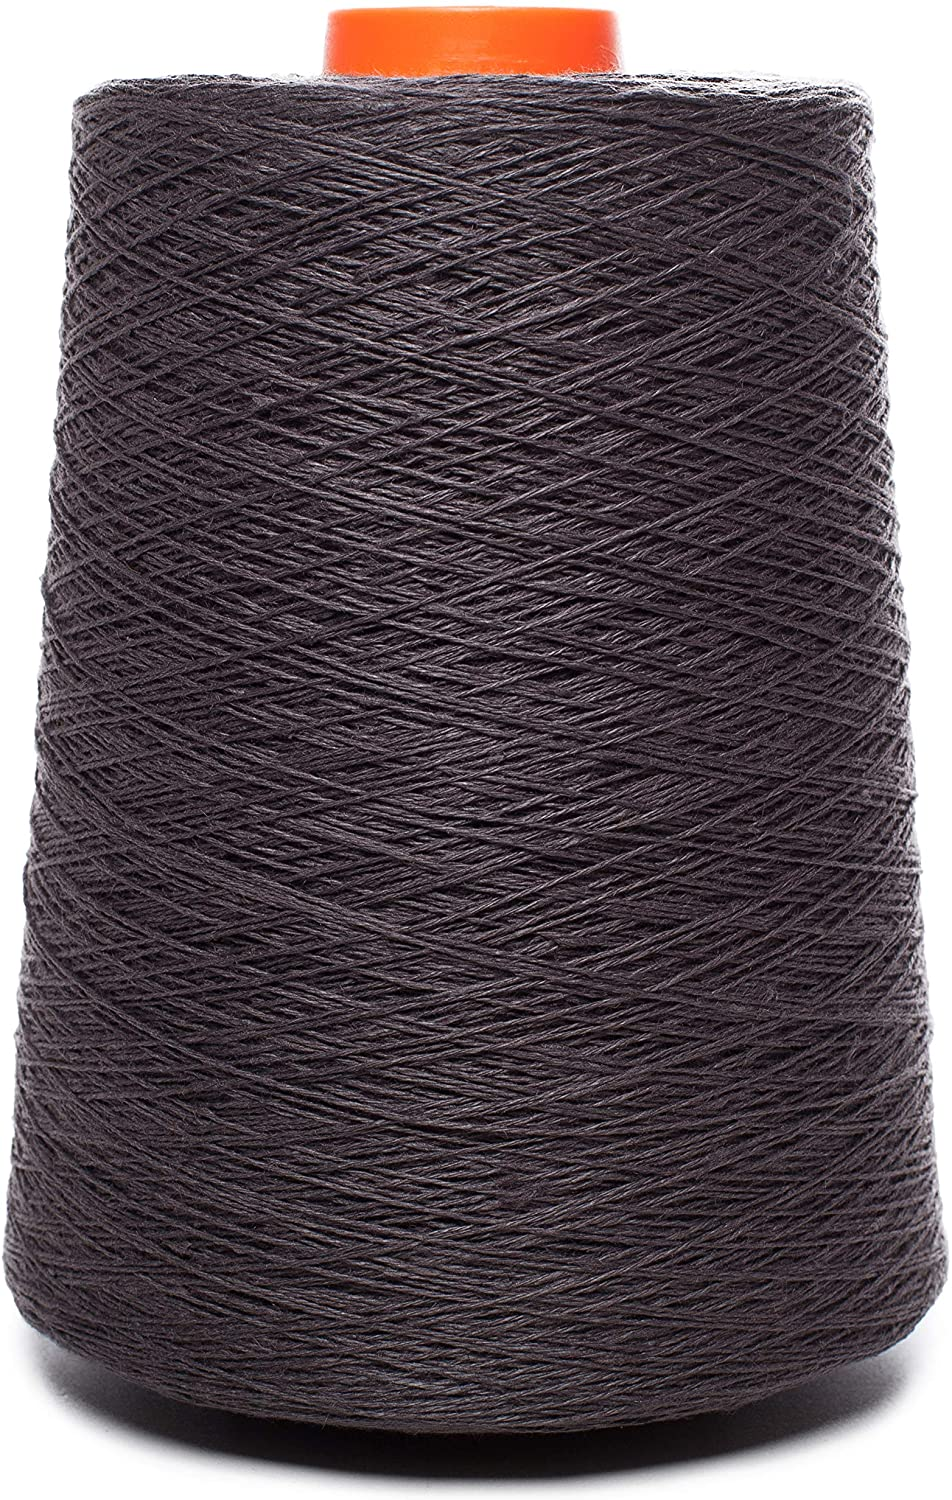 Lusie's Linen Yarn - 100% Linen - 1.15 lb (18oz) Cone - Anthracite Gray - for Weaving, Crocheting, Knitting, Embroidery (4-PLY)